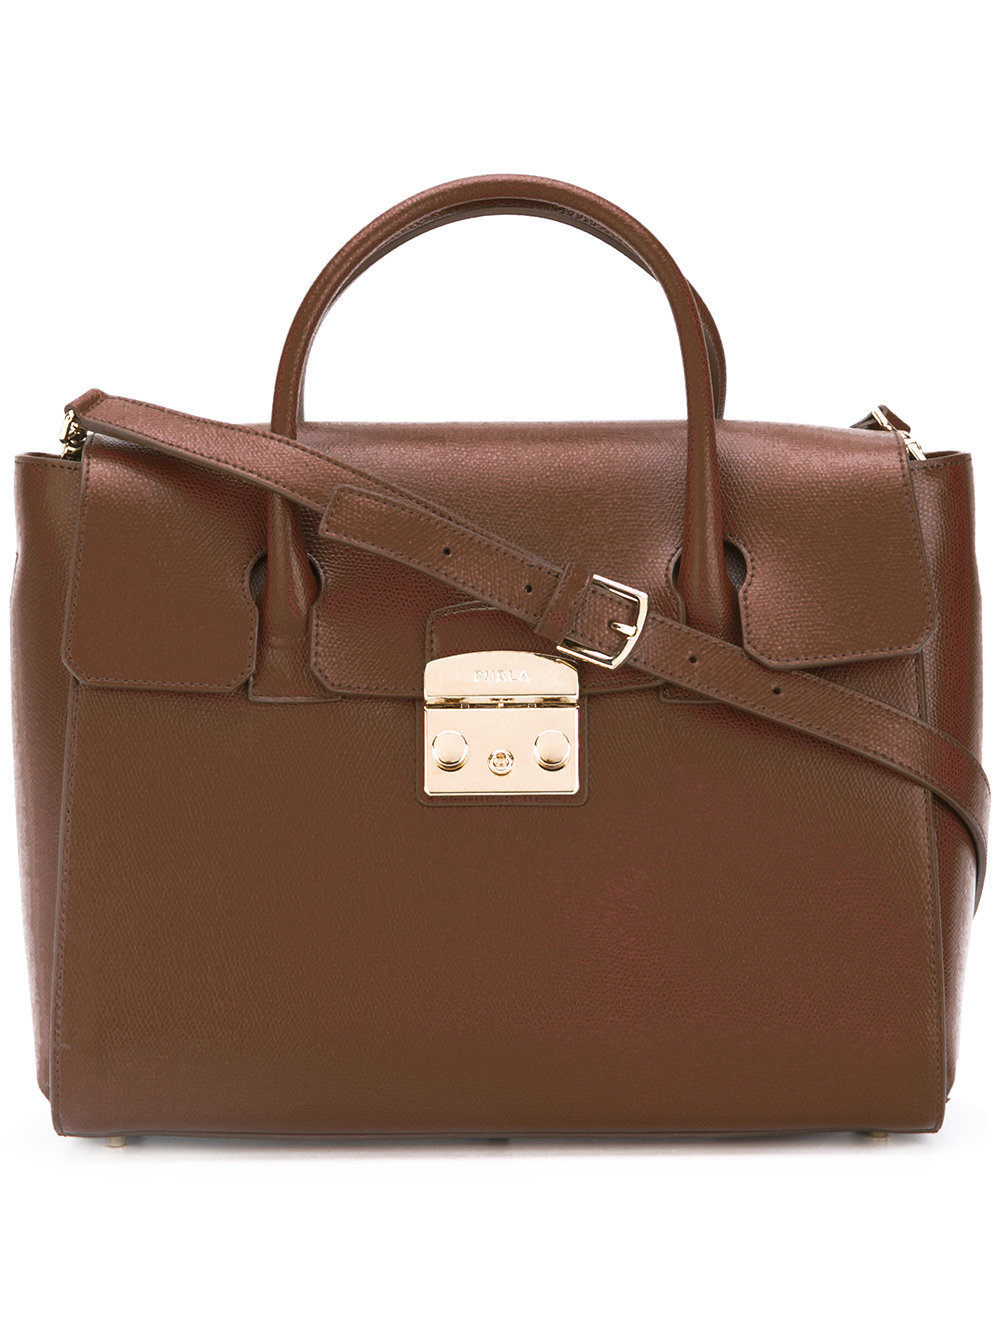 大人気♦FURLA  top handle satchel♦